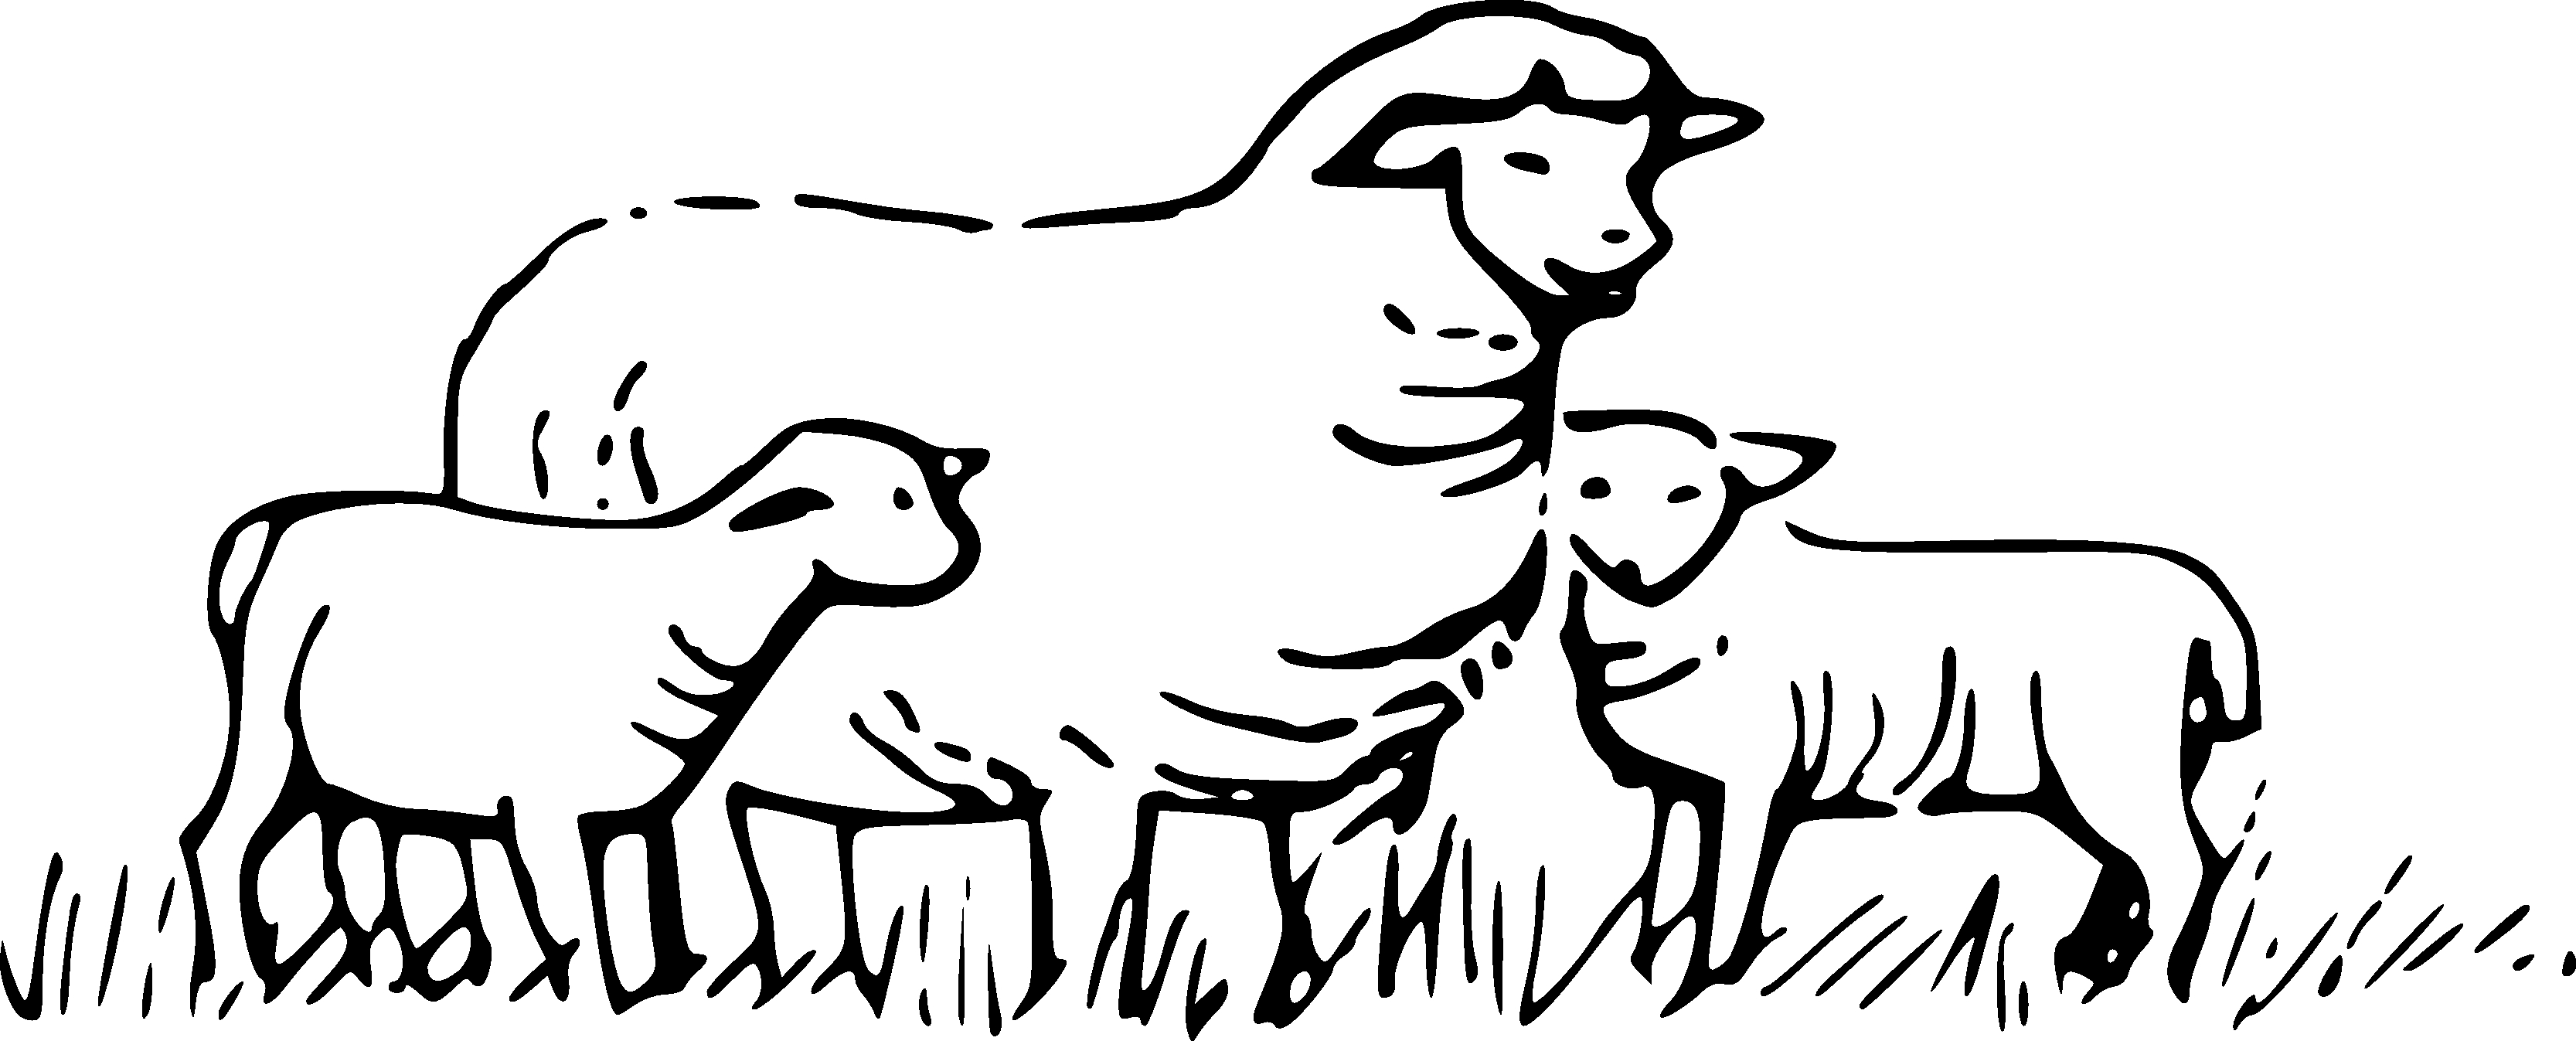 3 clipart sheep. Unique black and white